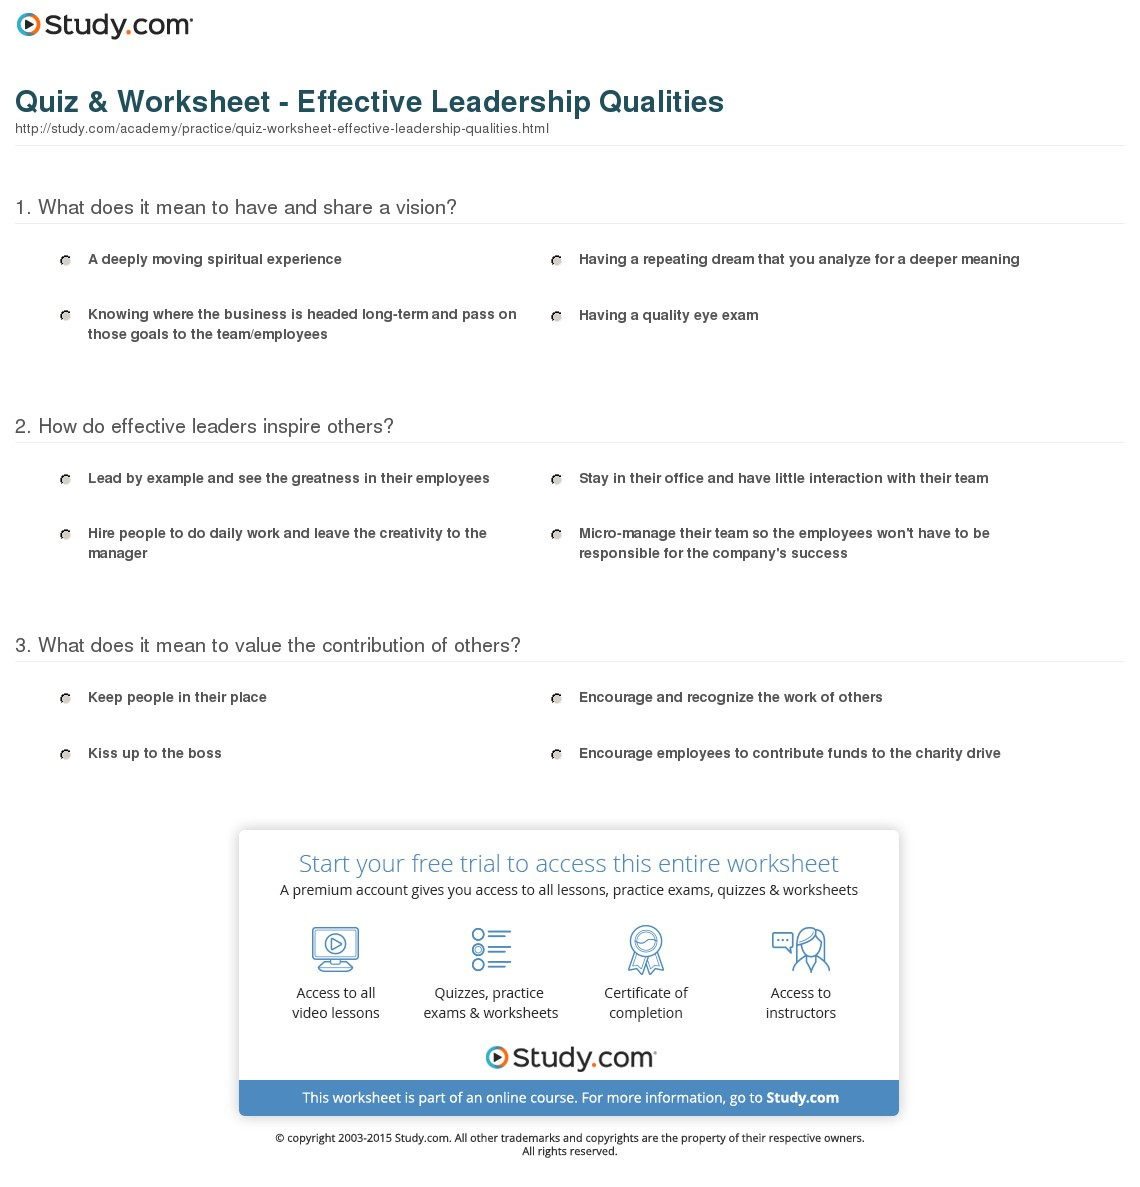 023 Quiz Worksheet Effective Leadership Qualities Essay Example Unique Examples Personal Philosophy Paper Mba College Full